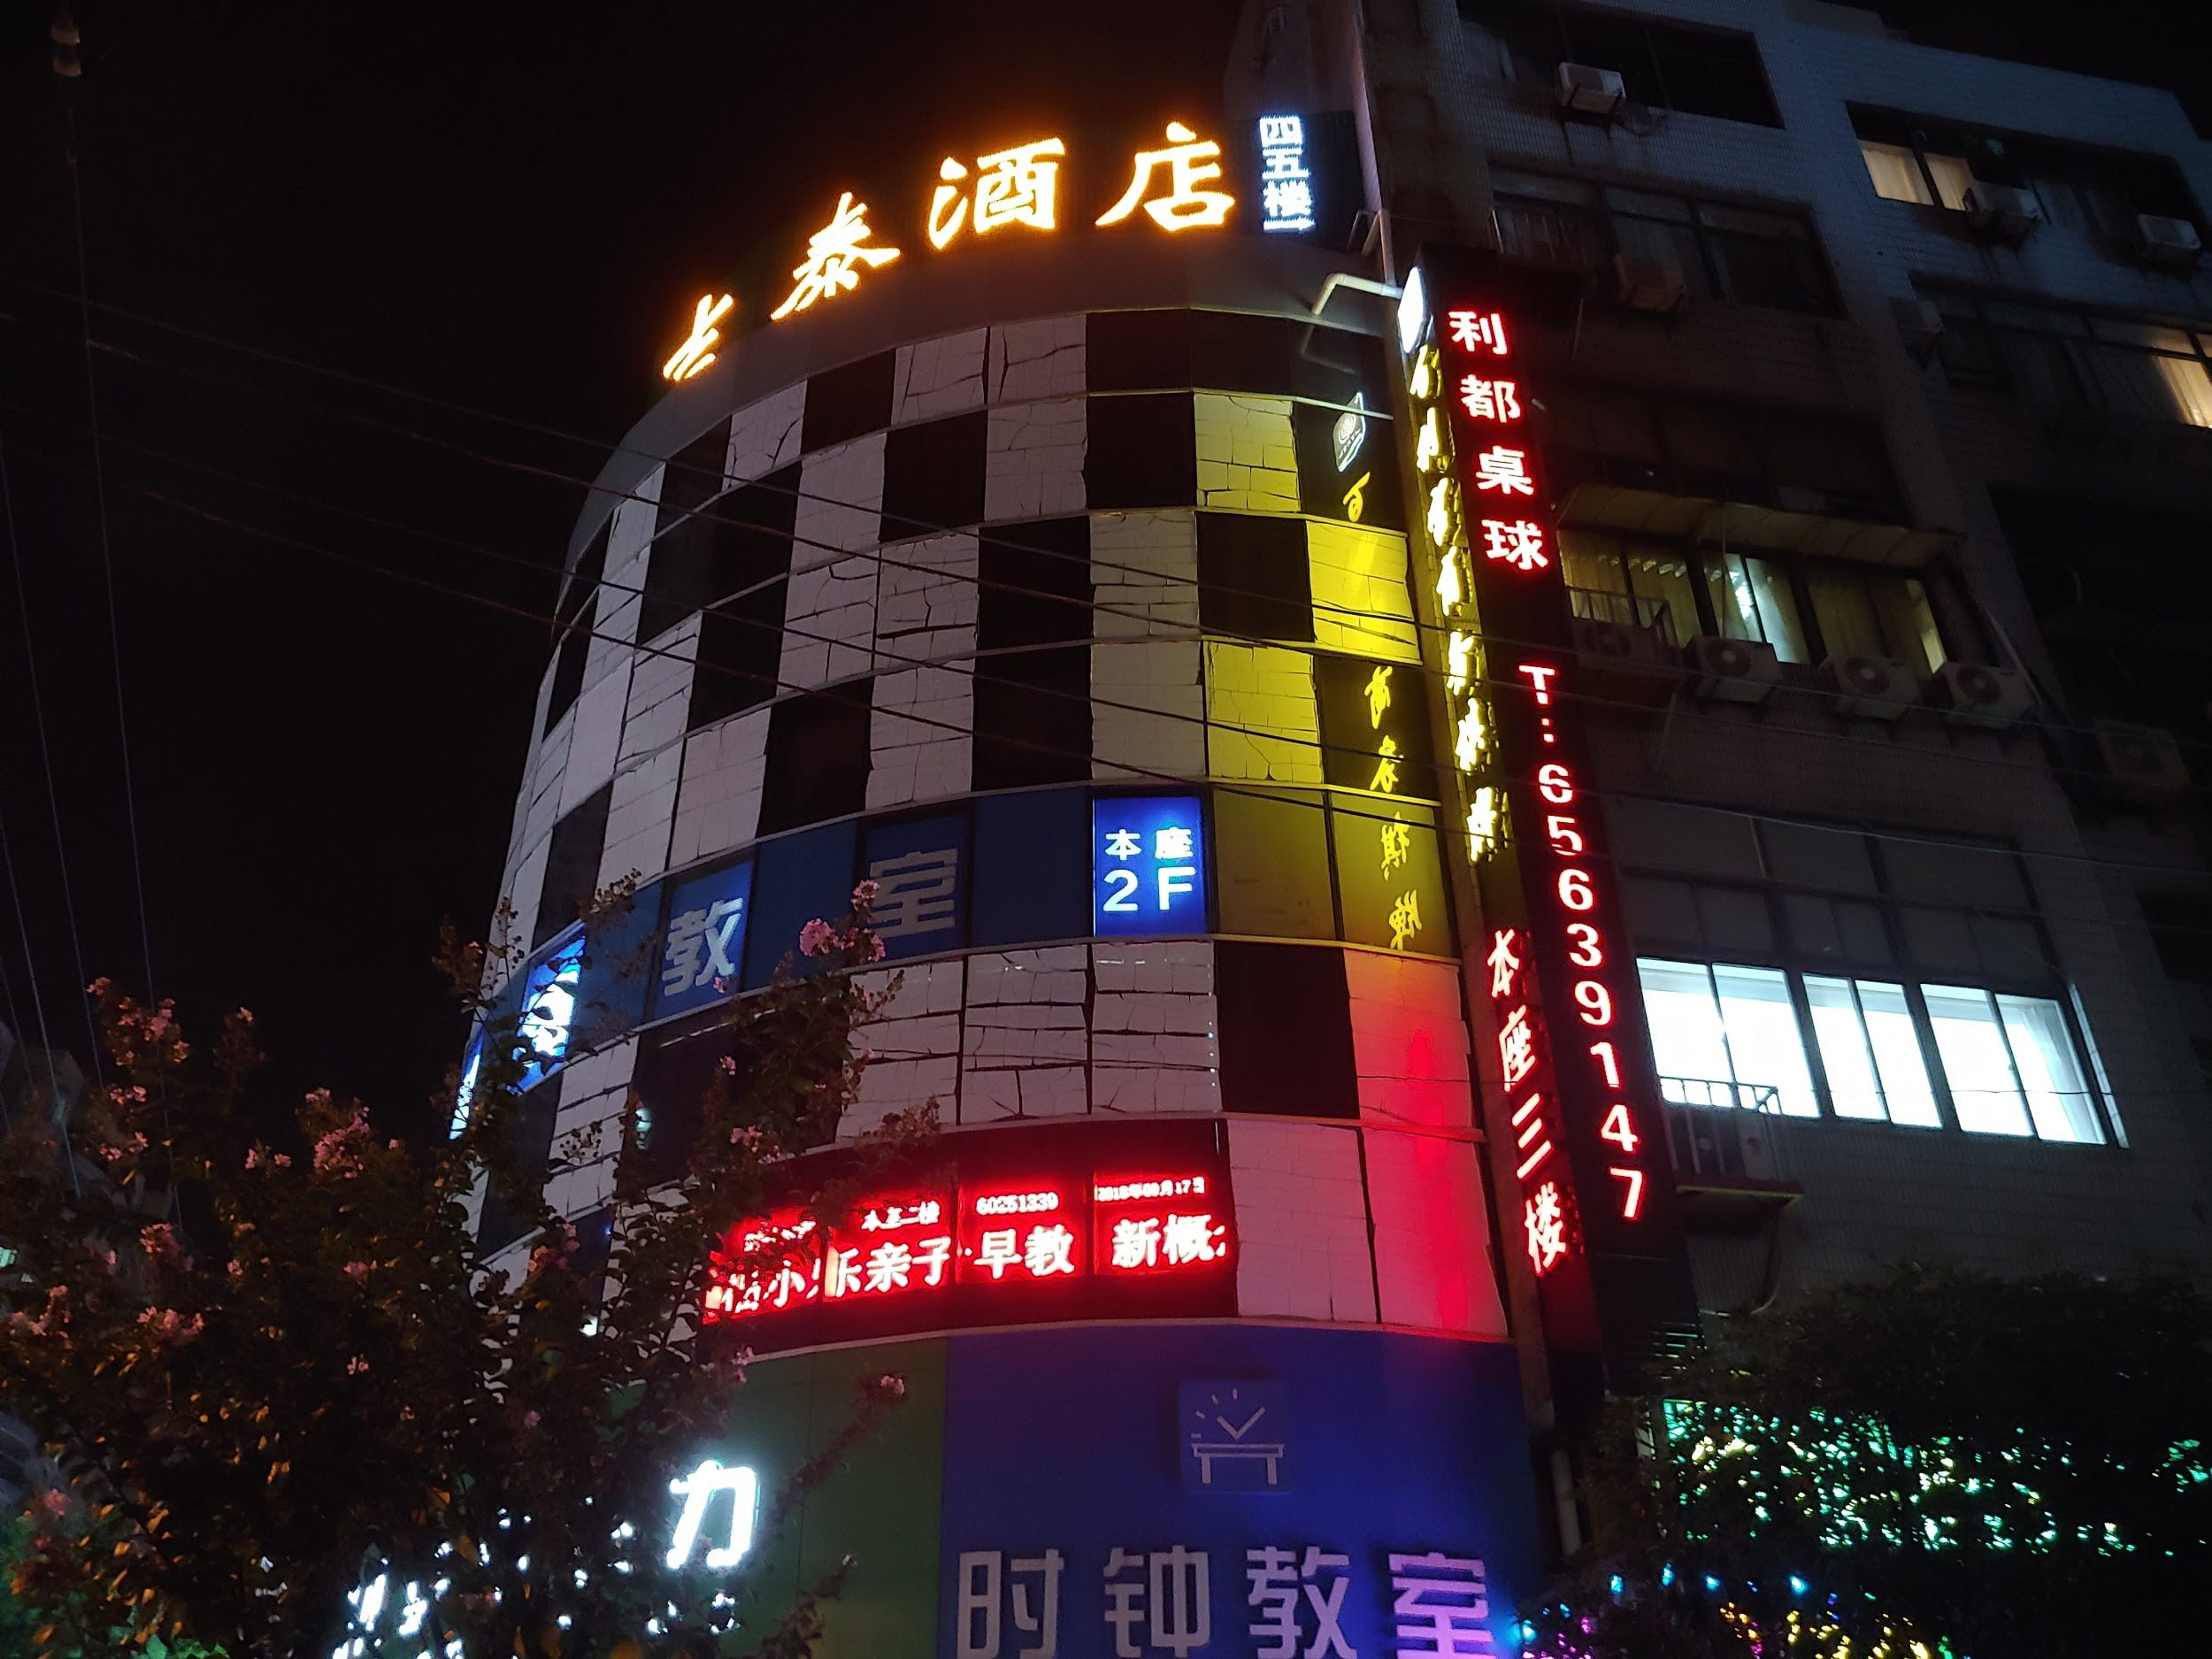 Neon building in Shanghai